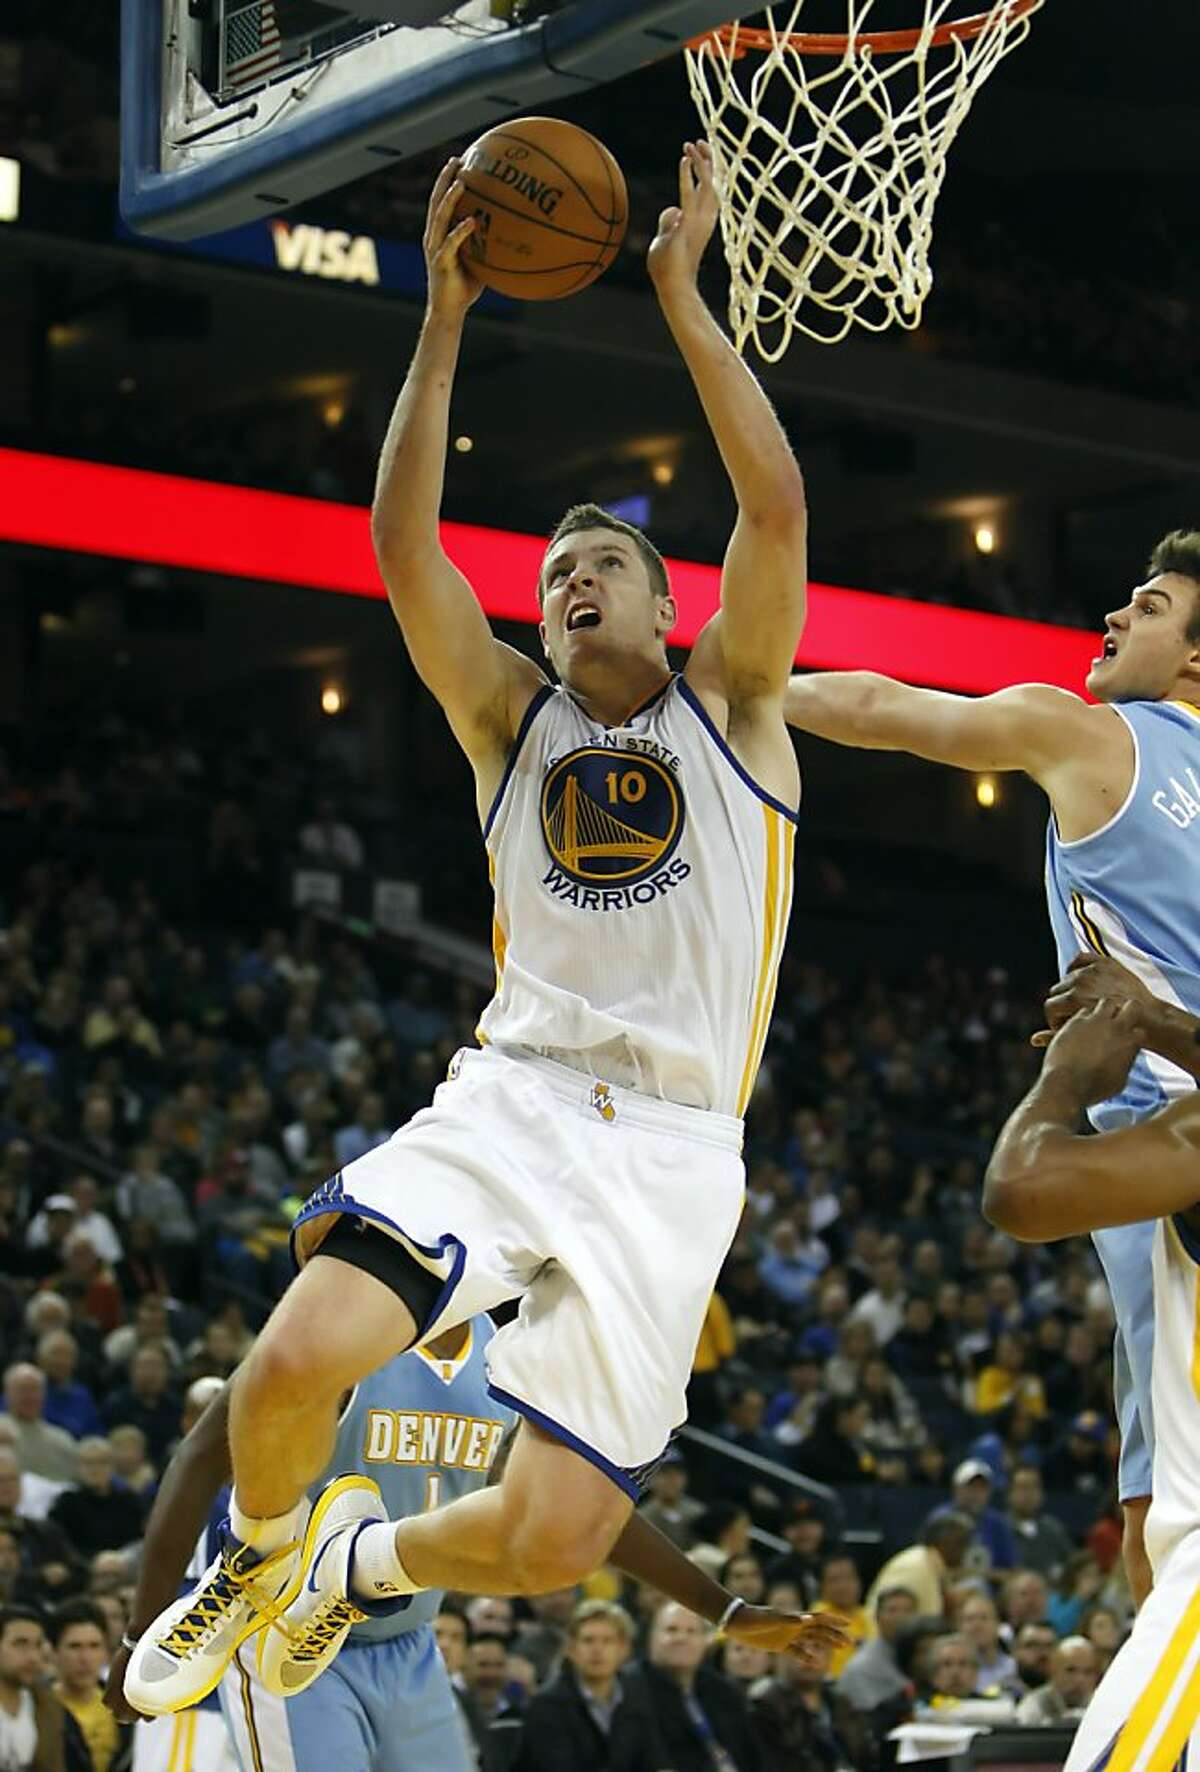 David Lee puts up a shot in the first half, and had the most points for the Warriors heading into the half. The Golden State Warriors played the Denver Nuggets at Oracle Arena in Oakland, Calif., on Thursday, November 29, 2012.